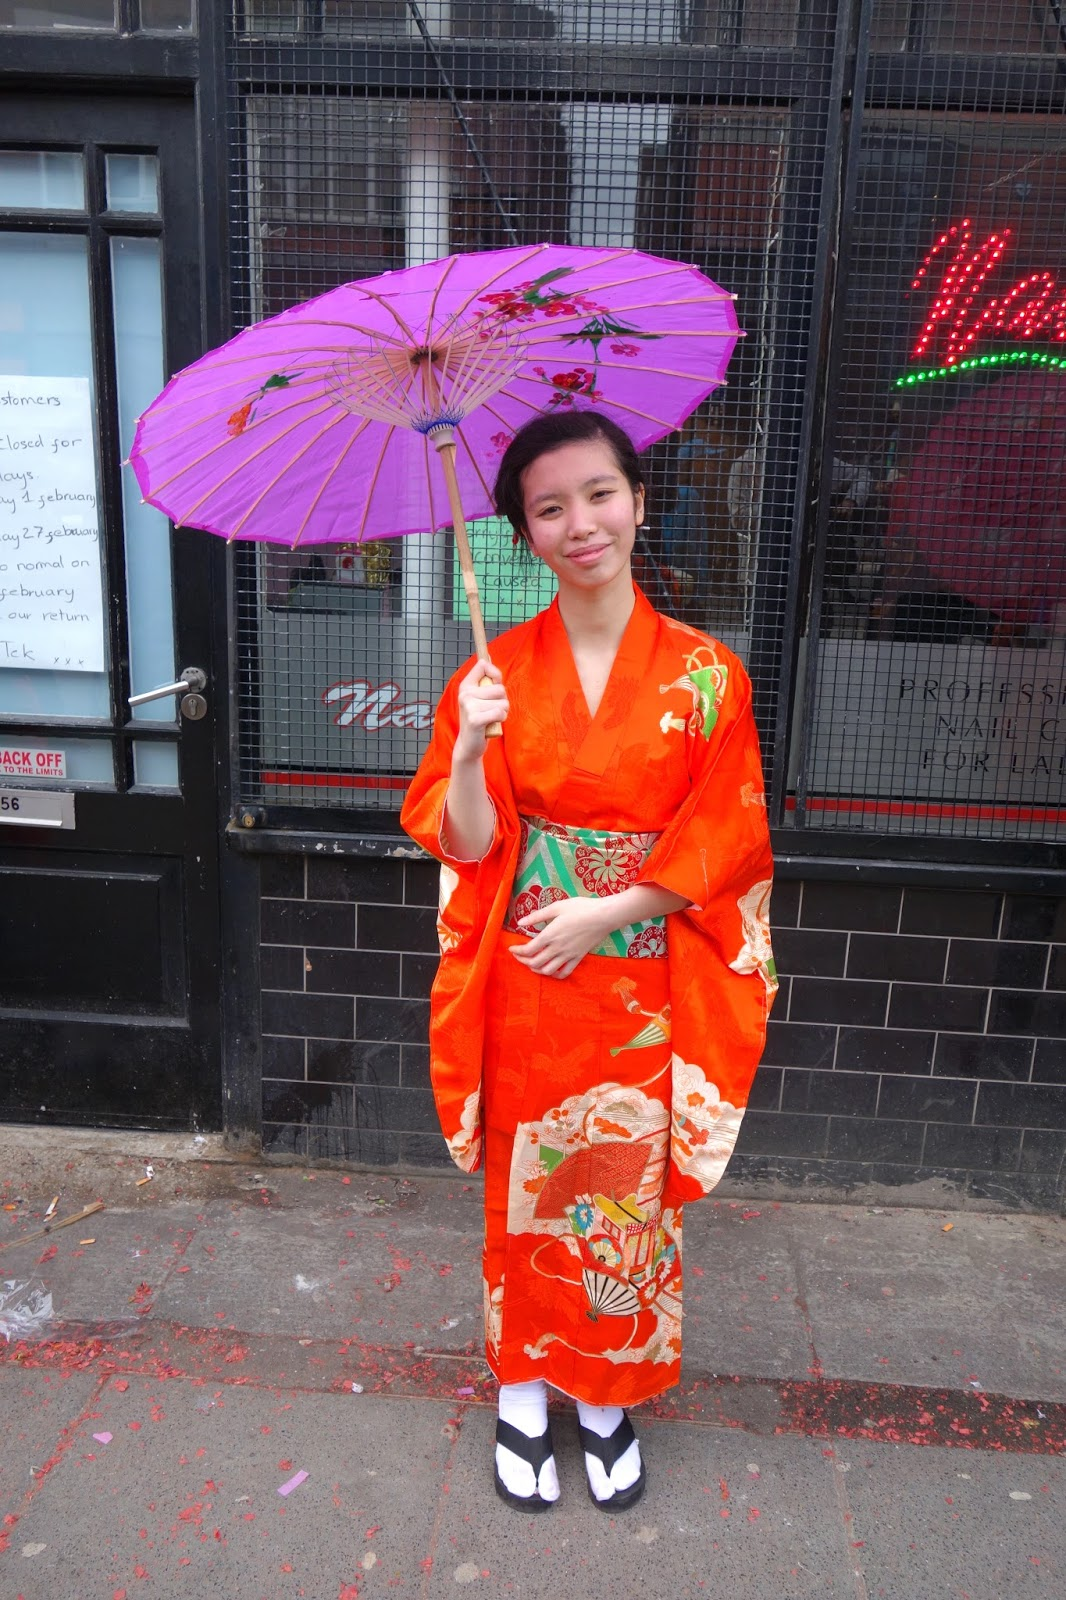 Chinese New Year Liverpool UK - https://uk.pinterest.com/roseandmuse/ - #liverpool #chinesenewyear #roseandmuse